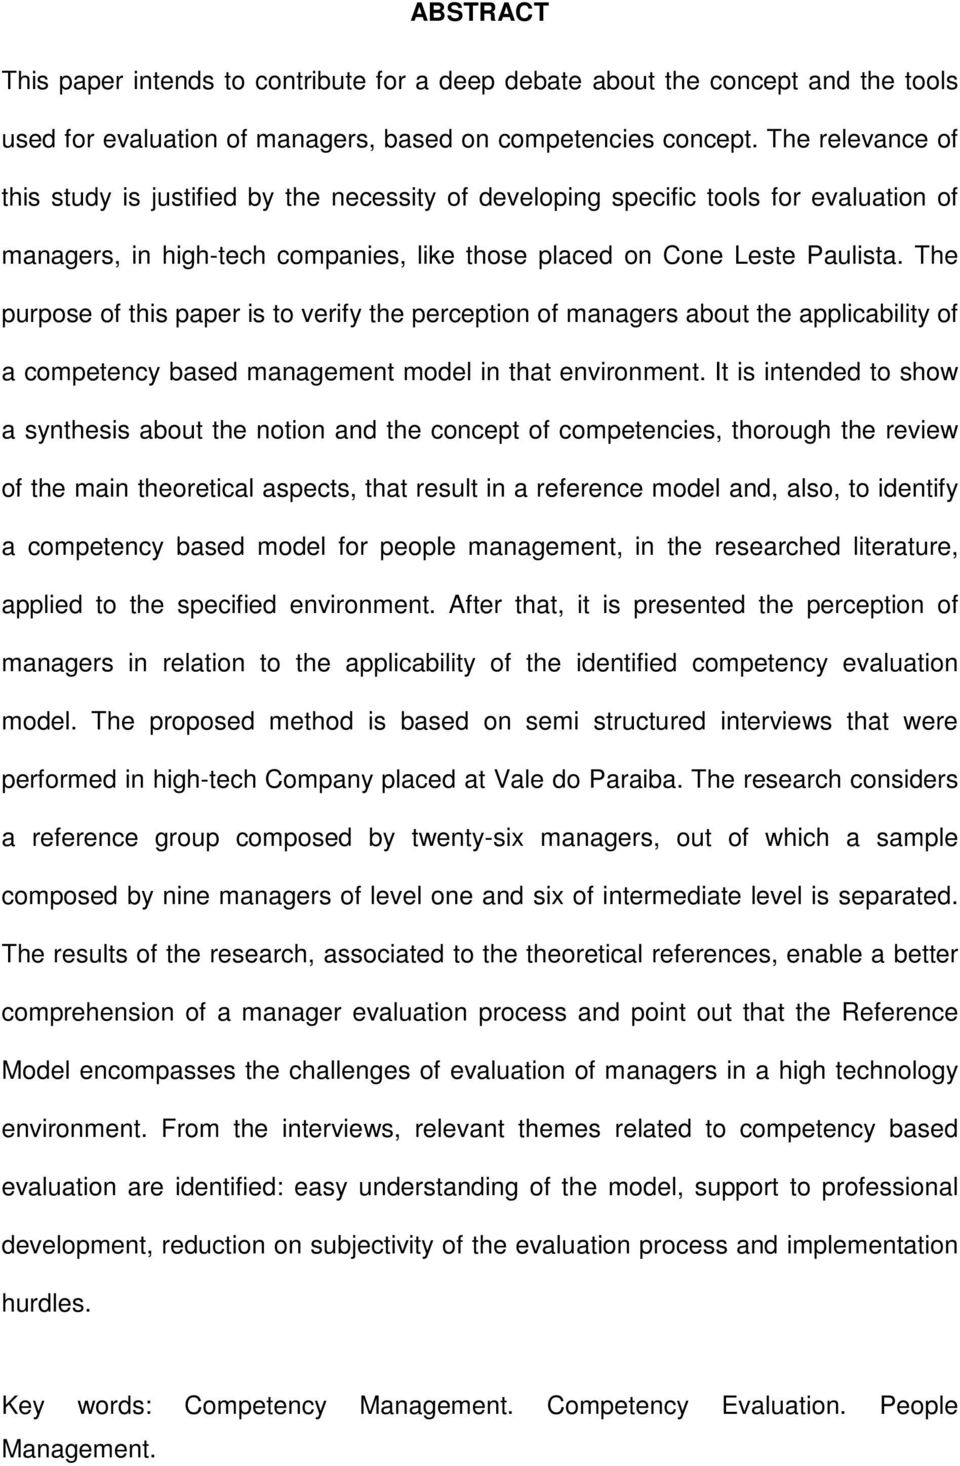 The purpose of this paper is to verify the perception of managers about the applicability of a competency based management model in that environment.